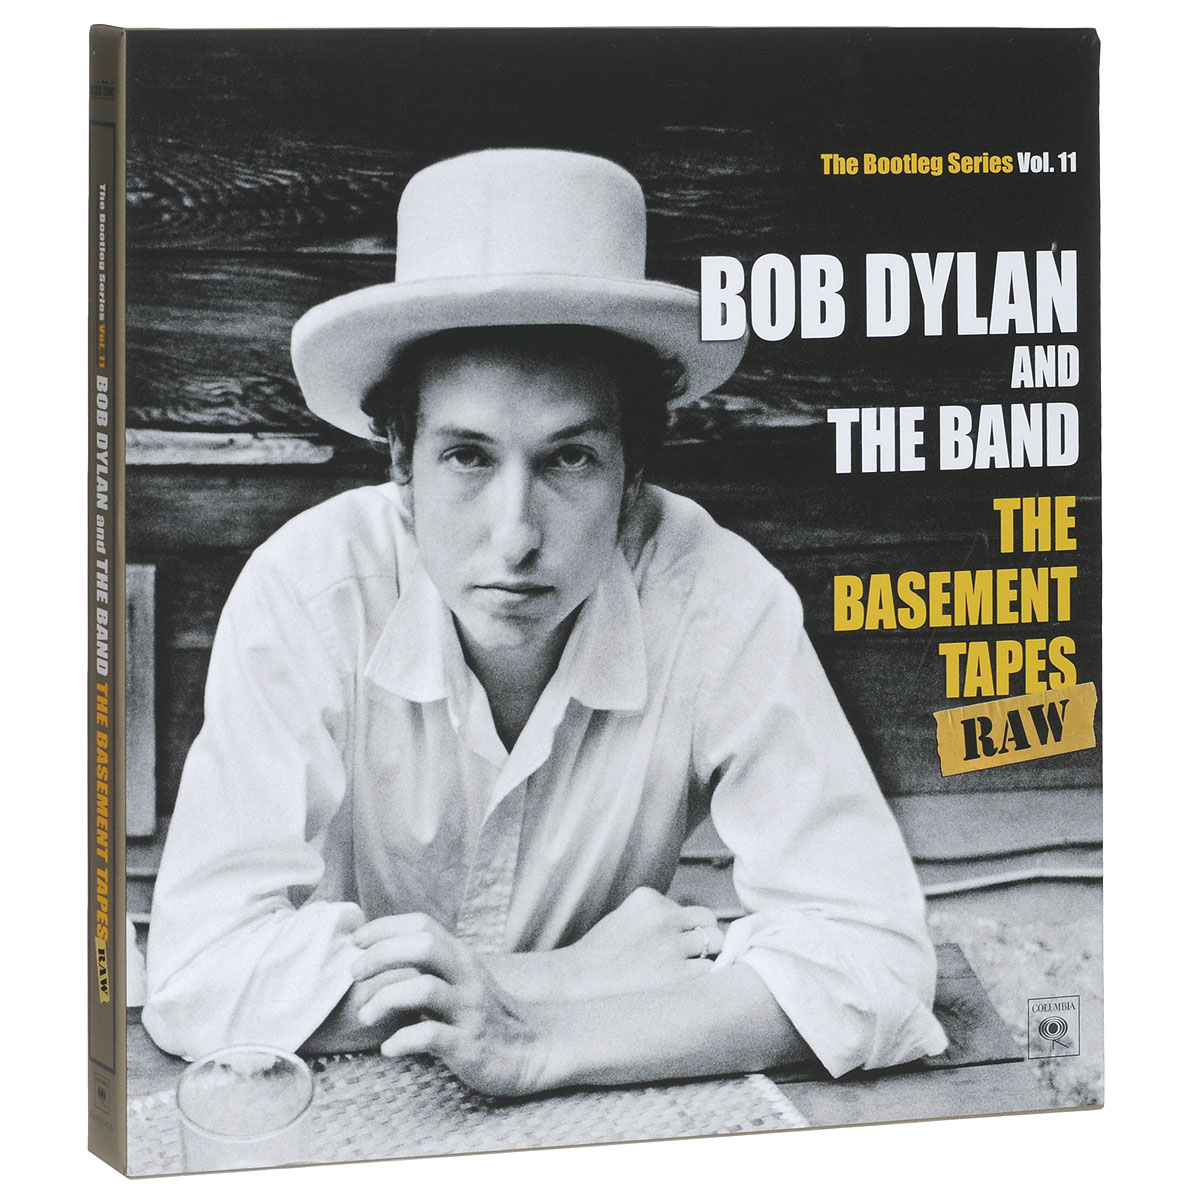 Bob Dylan And The Band Bob Dylan and The Band. The Bootleg Series Vol. 11: The Basement Tapes Complete. Special Deluxe (2 CD + 3 LP) cd диск nickelback the triple album collection vol 1 the state silver side up the long road 3 cd